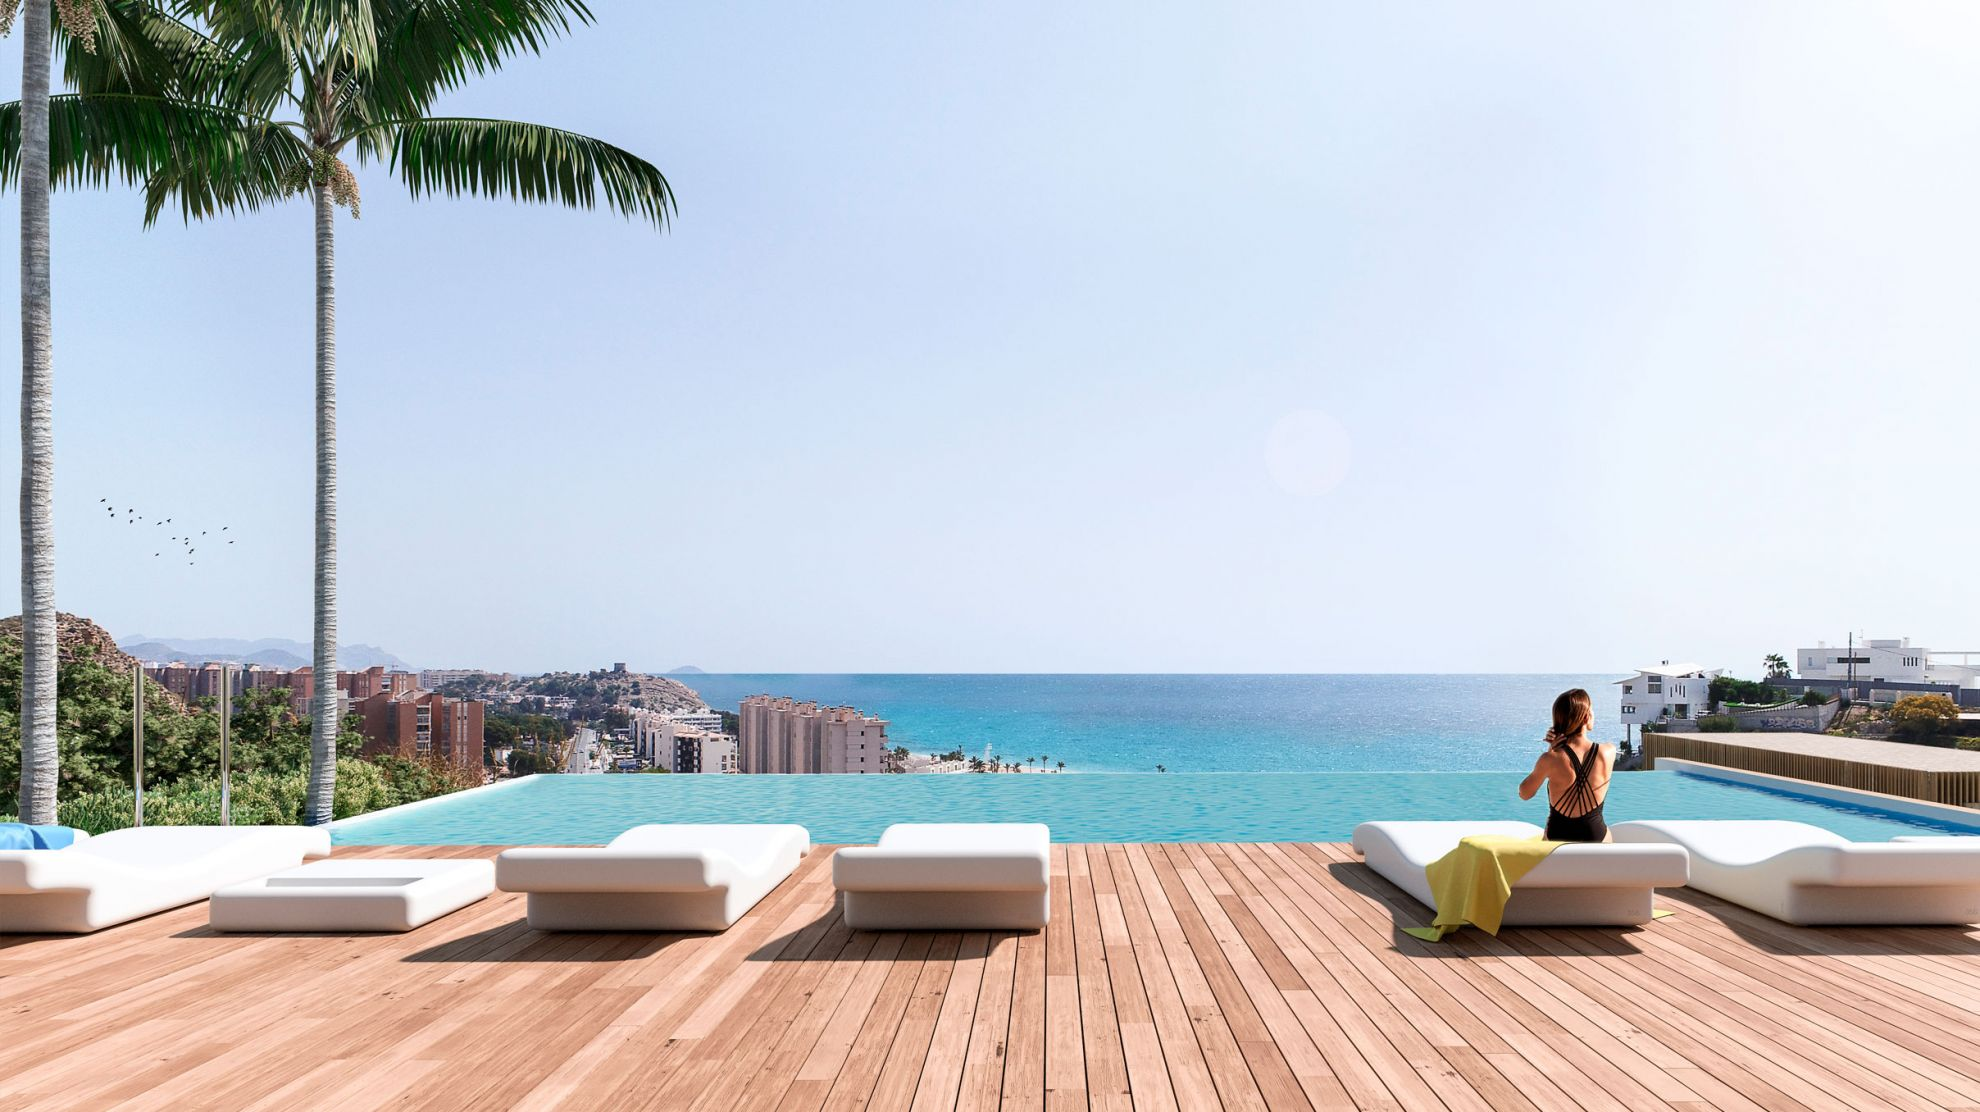 2 and 3 bedroom penthouse-style apartments with big terraces overlookg the sea. House 26 10